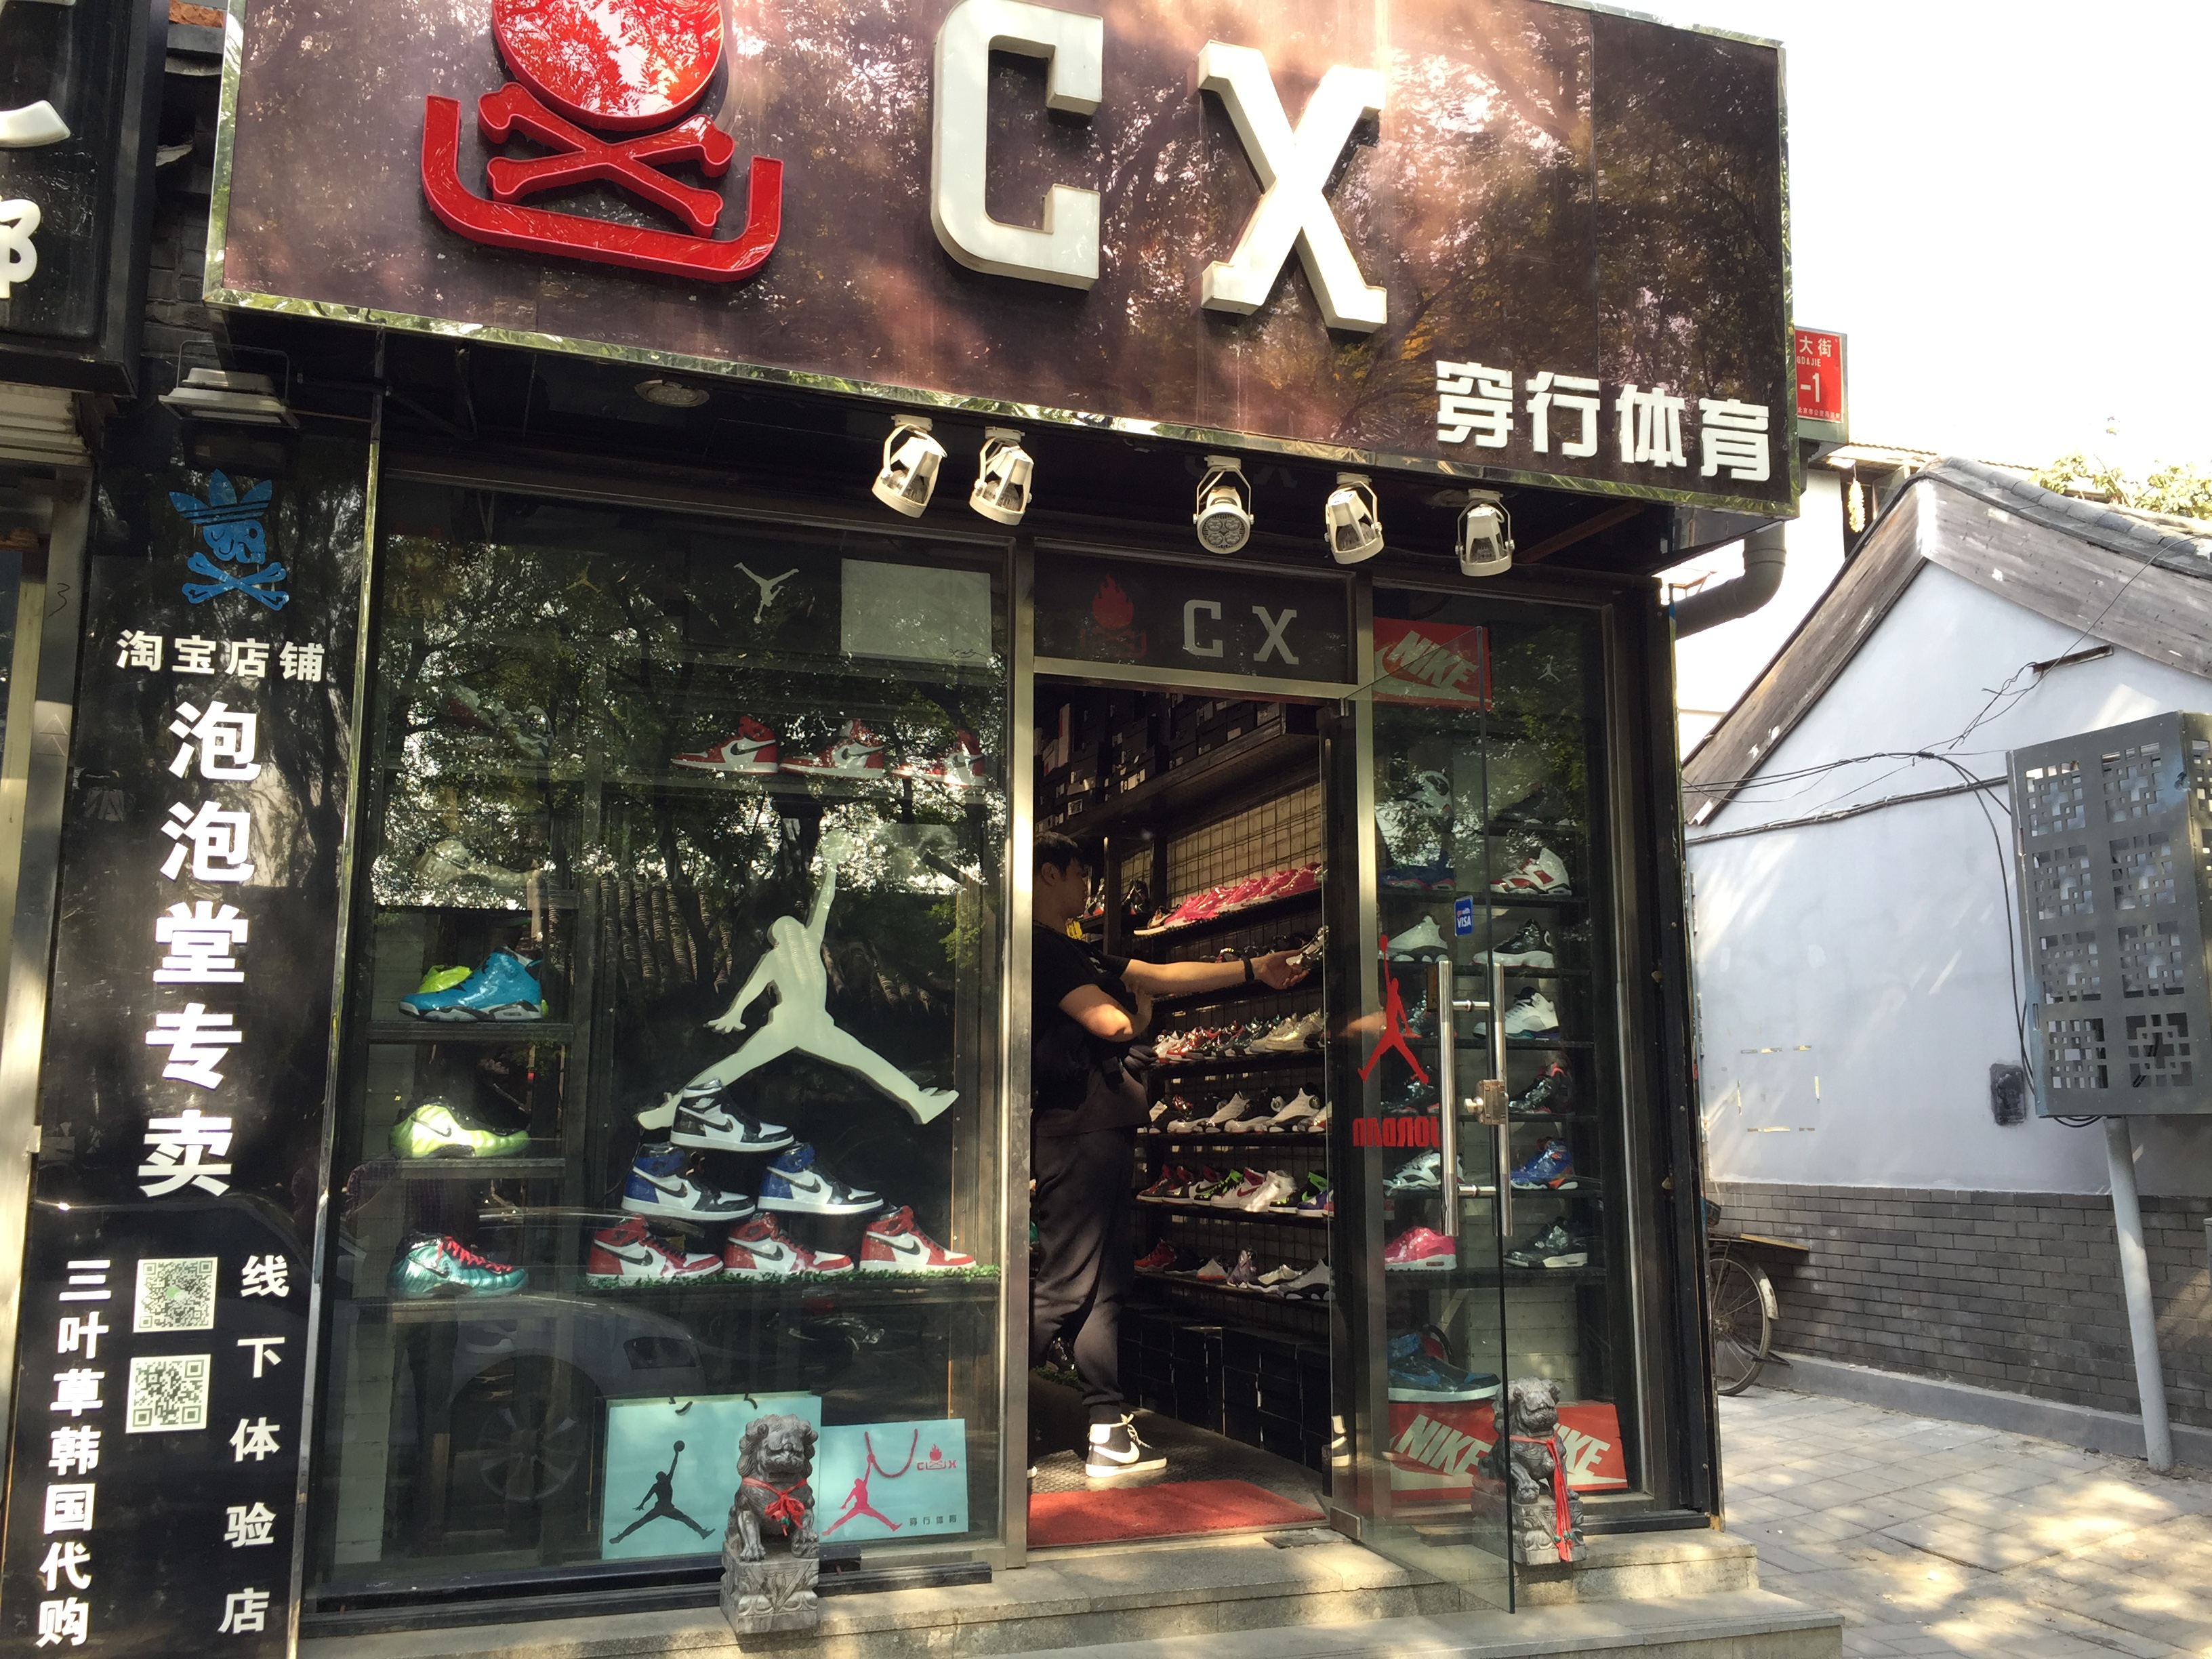 One of the half-dozen small shops selling Jordan shoes near Beijing's old city center.